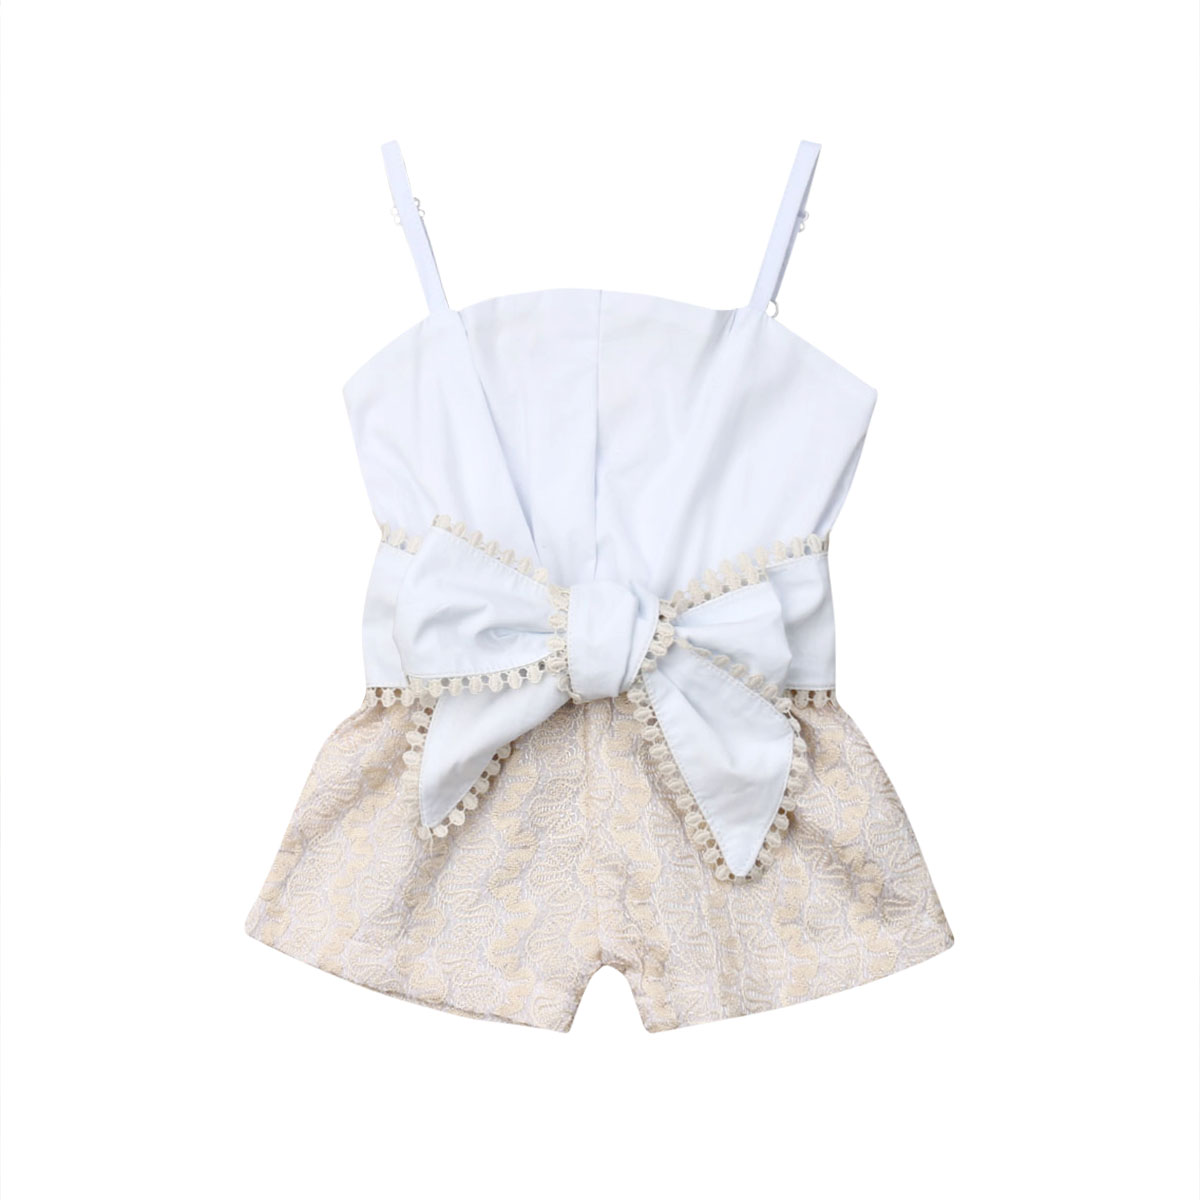 33233b222 Infant Kid Baby Girl 1-4Y Summer Romper Lace Sling Openwork Bow Rompers Top  Sunsuit Clothes Sets ~ Super Sale June 2019